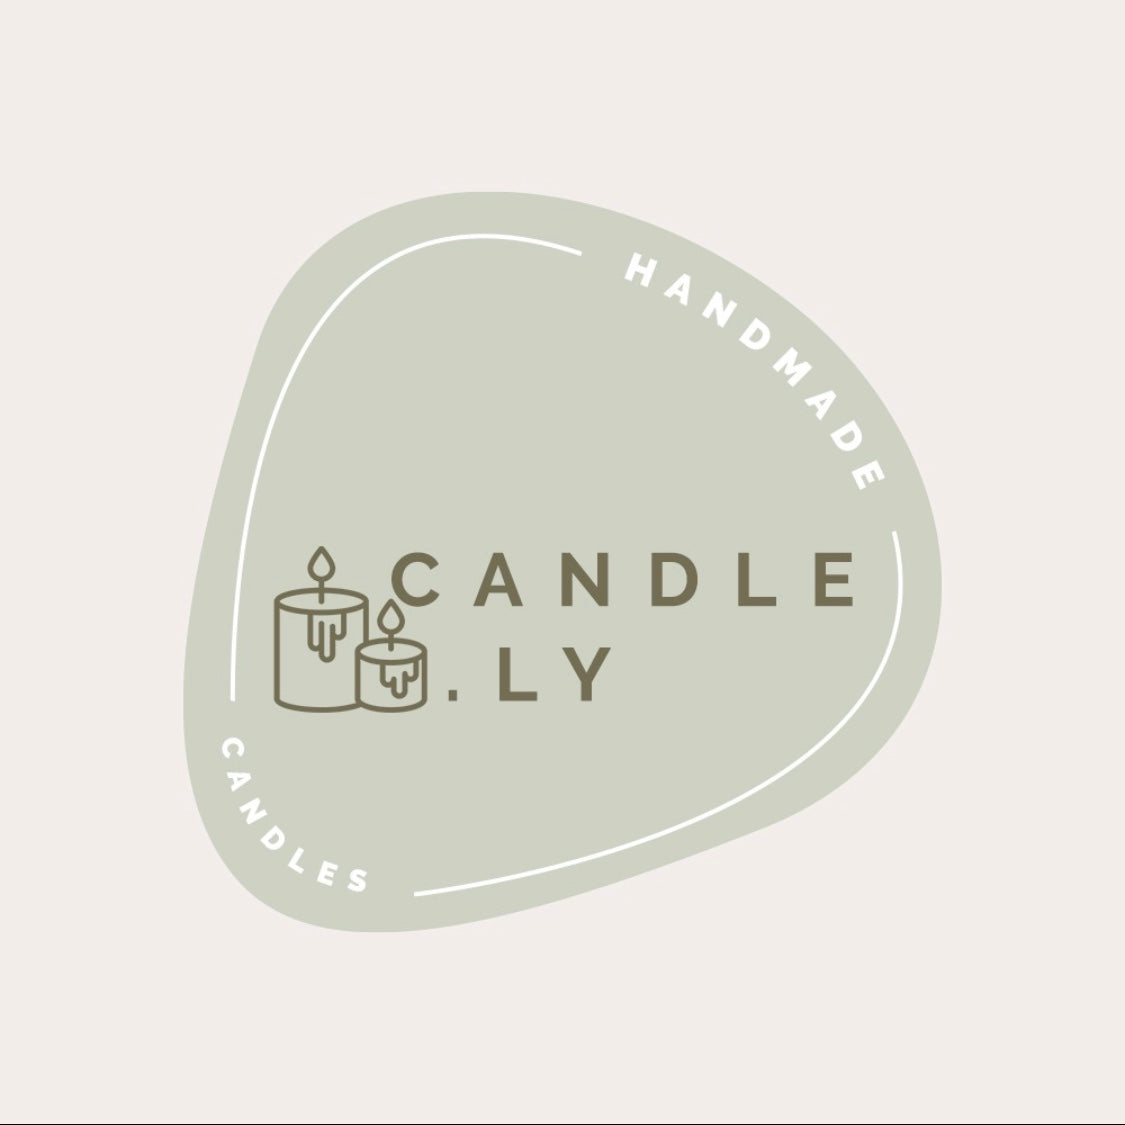 Candle.ly